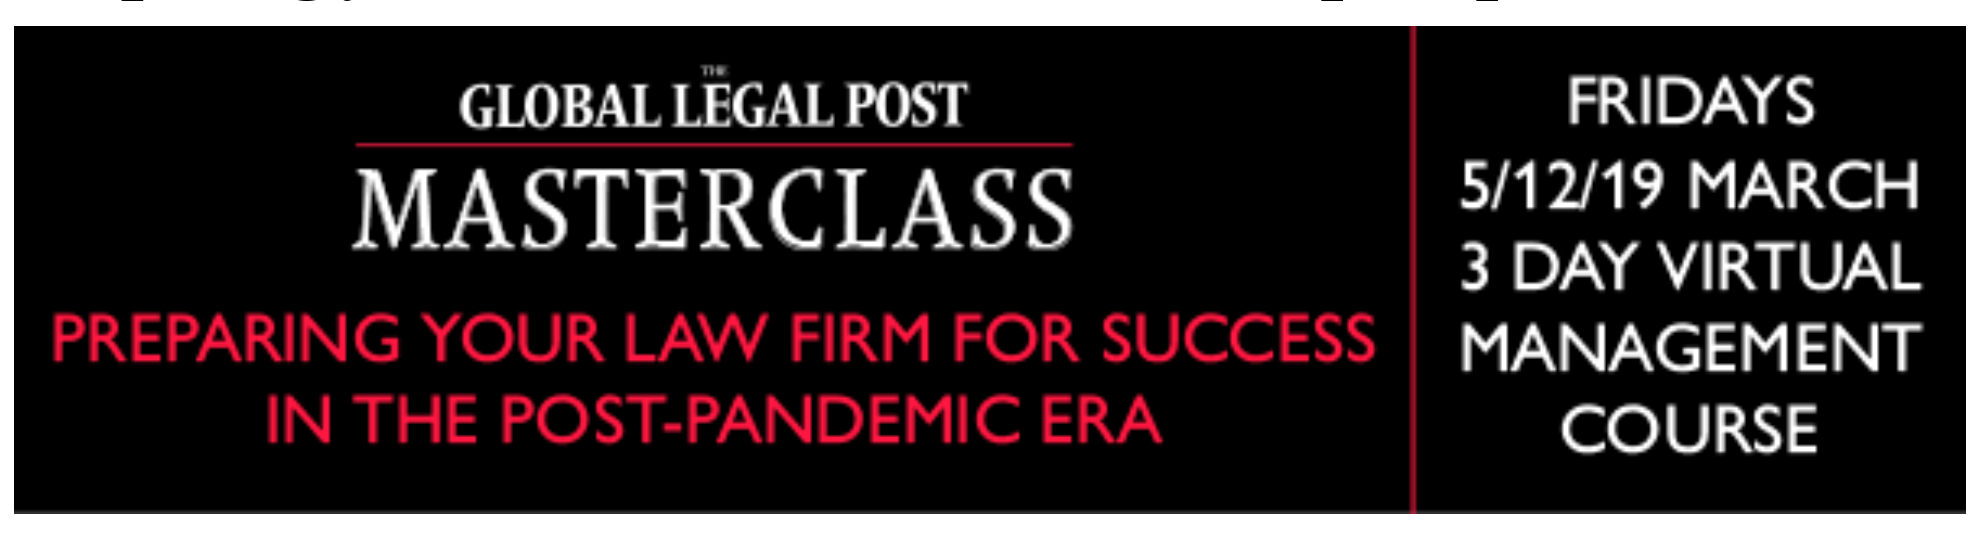 Preparing your law firm for success in the post-pandemic era